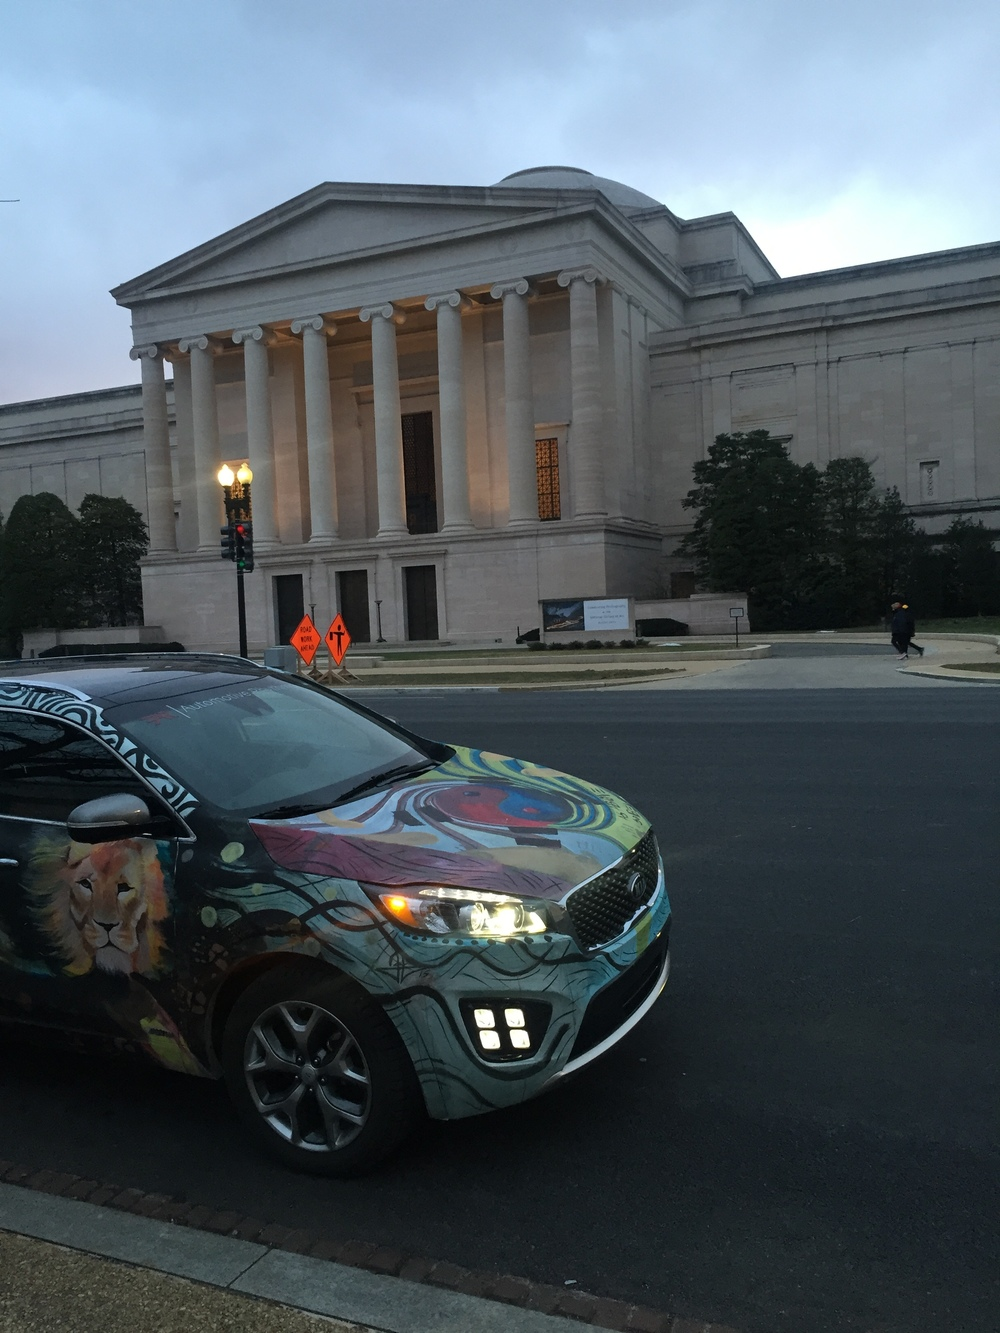 Kia Sorento Art Car - National Archives